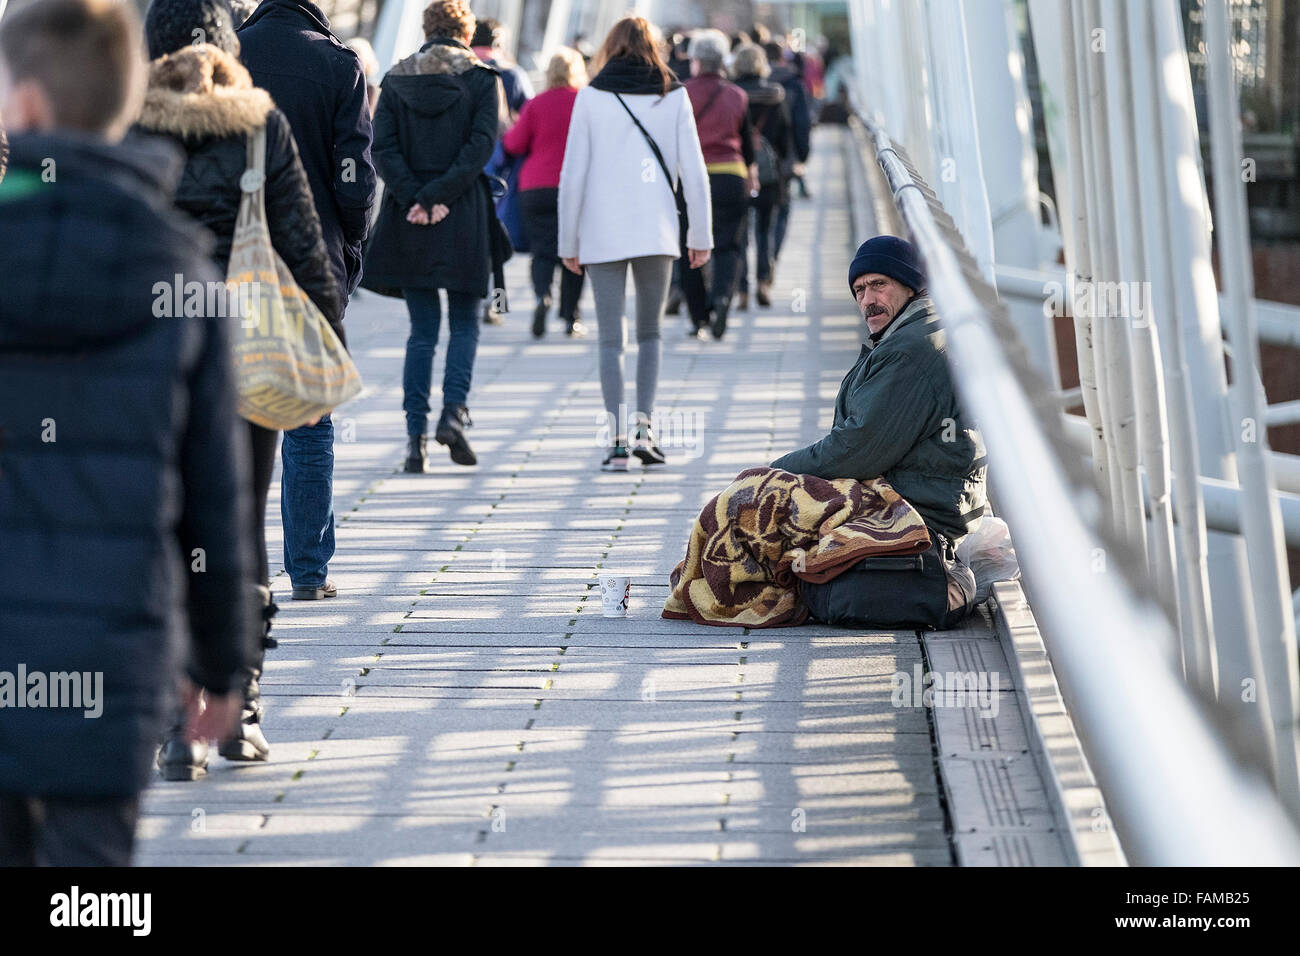 People walking past a homeless man begging on Hungerford Bridge in London. - Stock Image